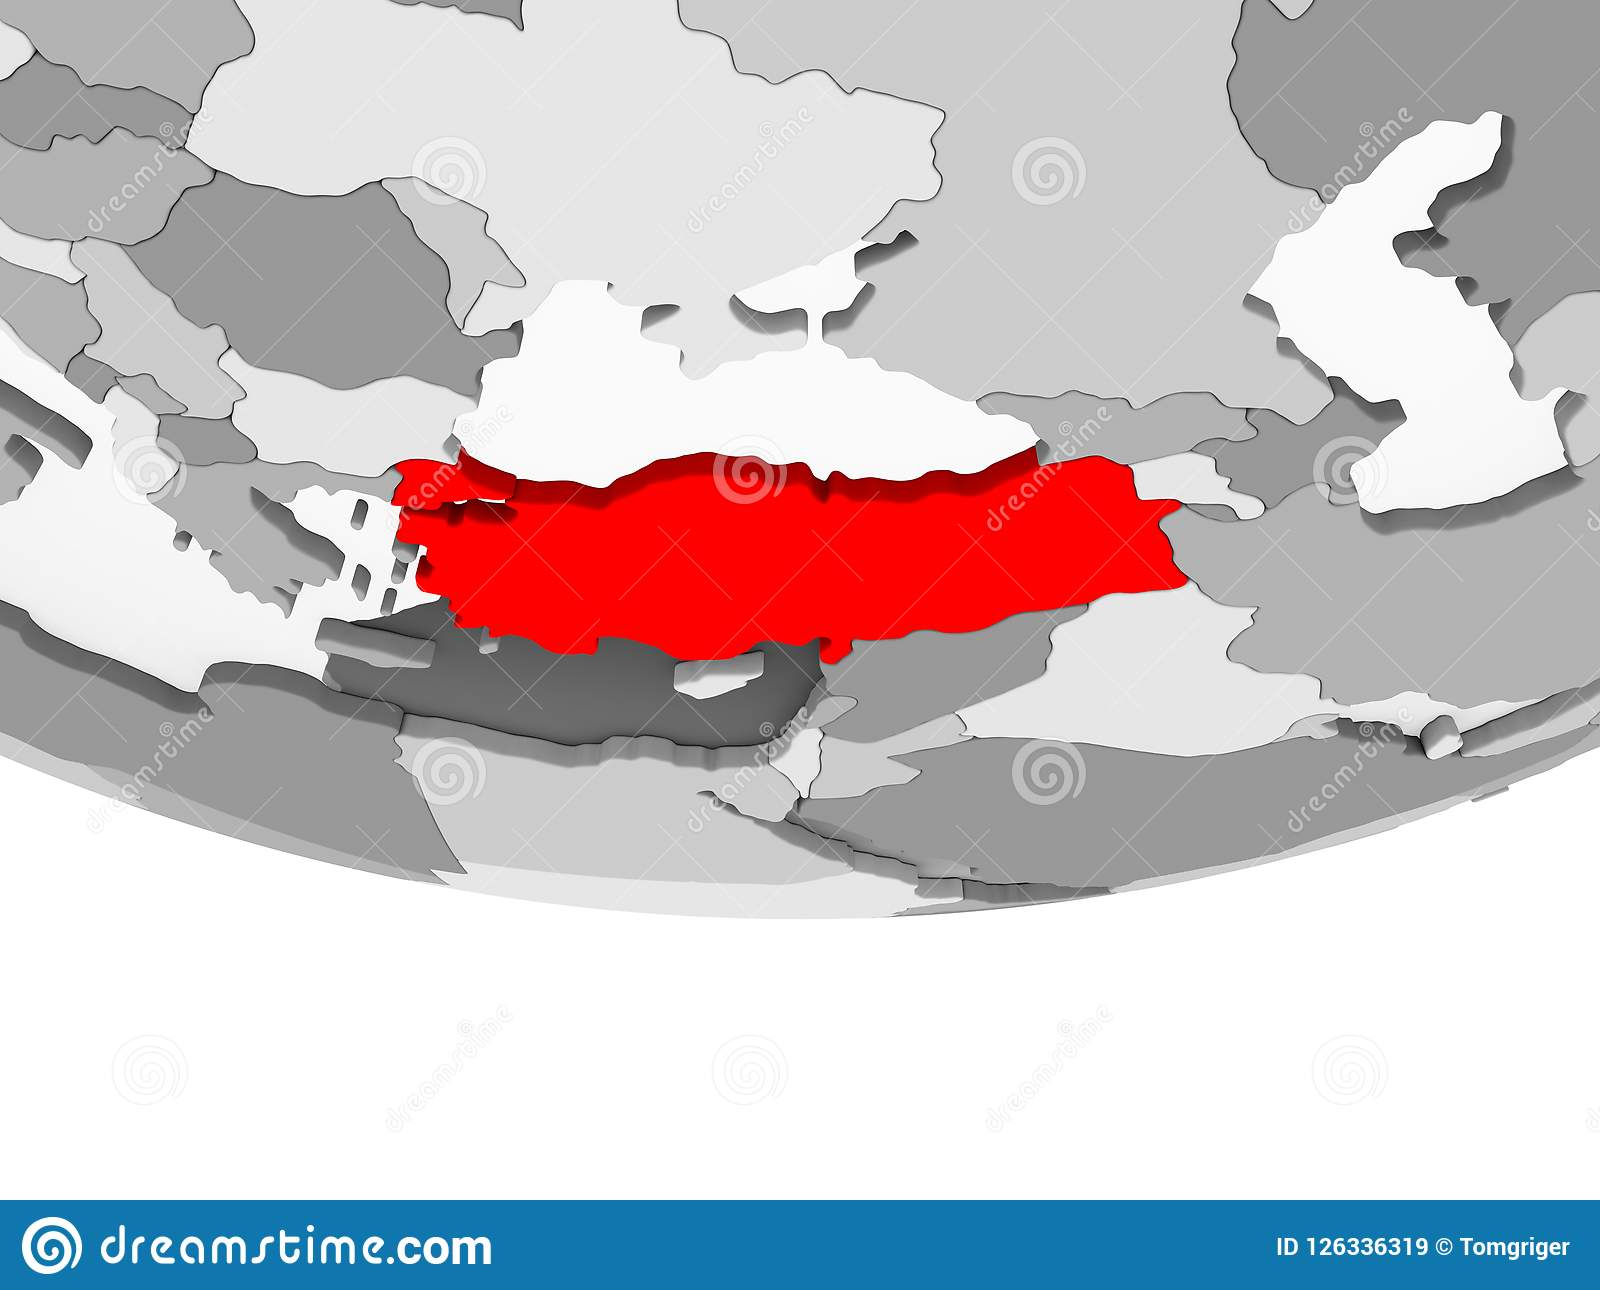 Map Of Turkey On Grey Political Globe Stock Illustration ... Geopolitical Map Of Turkey on tierra del fuego map, topological map, historical map, data visualization map, world map, geographic map, history map, present day map, east and southeast asia map, africa map, cartography map, geographical map, political map, us and north america map,